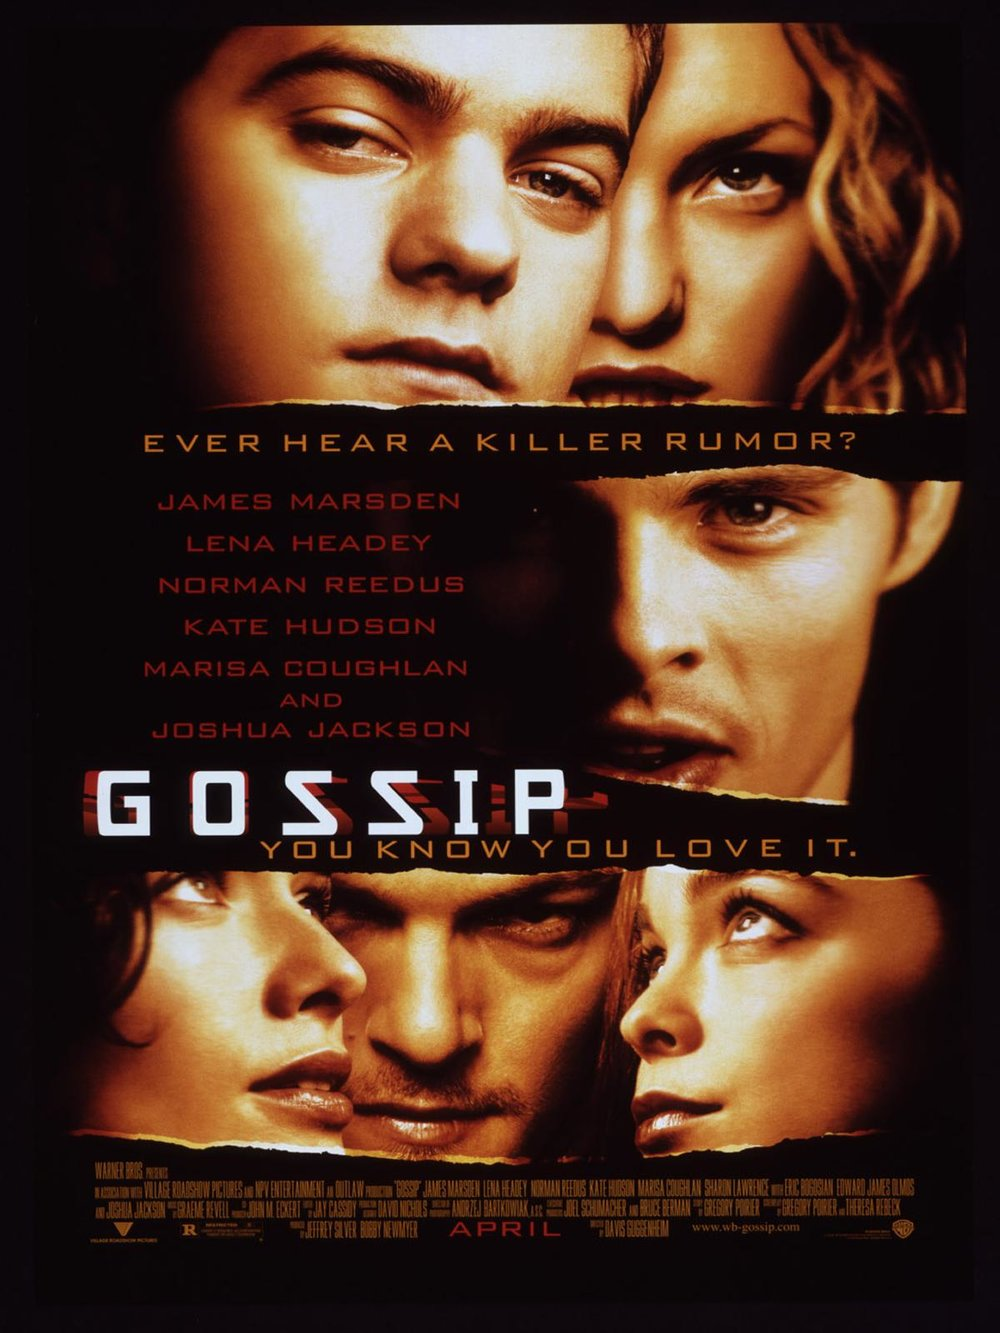 - POSITION: ProducerSTUDIO: Warner BrosYEAR: 2000GENRE: Drama, Mystery, ThrillerPLOT: Three college students base their class project around gossip and how fast it spreads, which soon spirals out of control.DIRECTOR: Davis GuggenheimCAST: James Marsden, Lena Headey, Norman Reedus, Kate Hudson, Joshua JacksonLOCATION: Toronto, Ontario, CanadaIMDBIMDB PROTRAILERBOX OFFICE MOJOSTREAMING